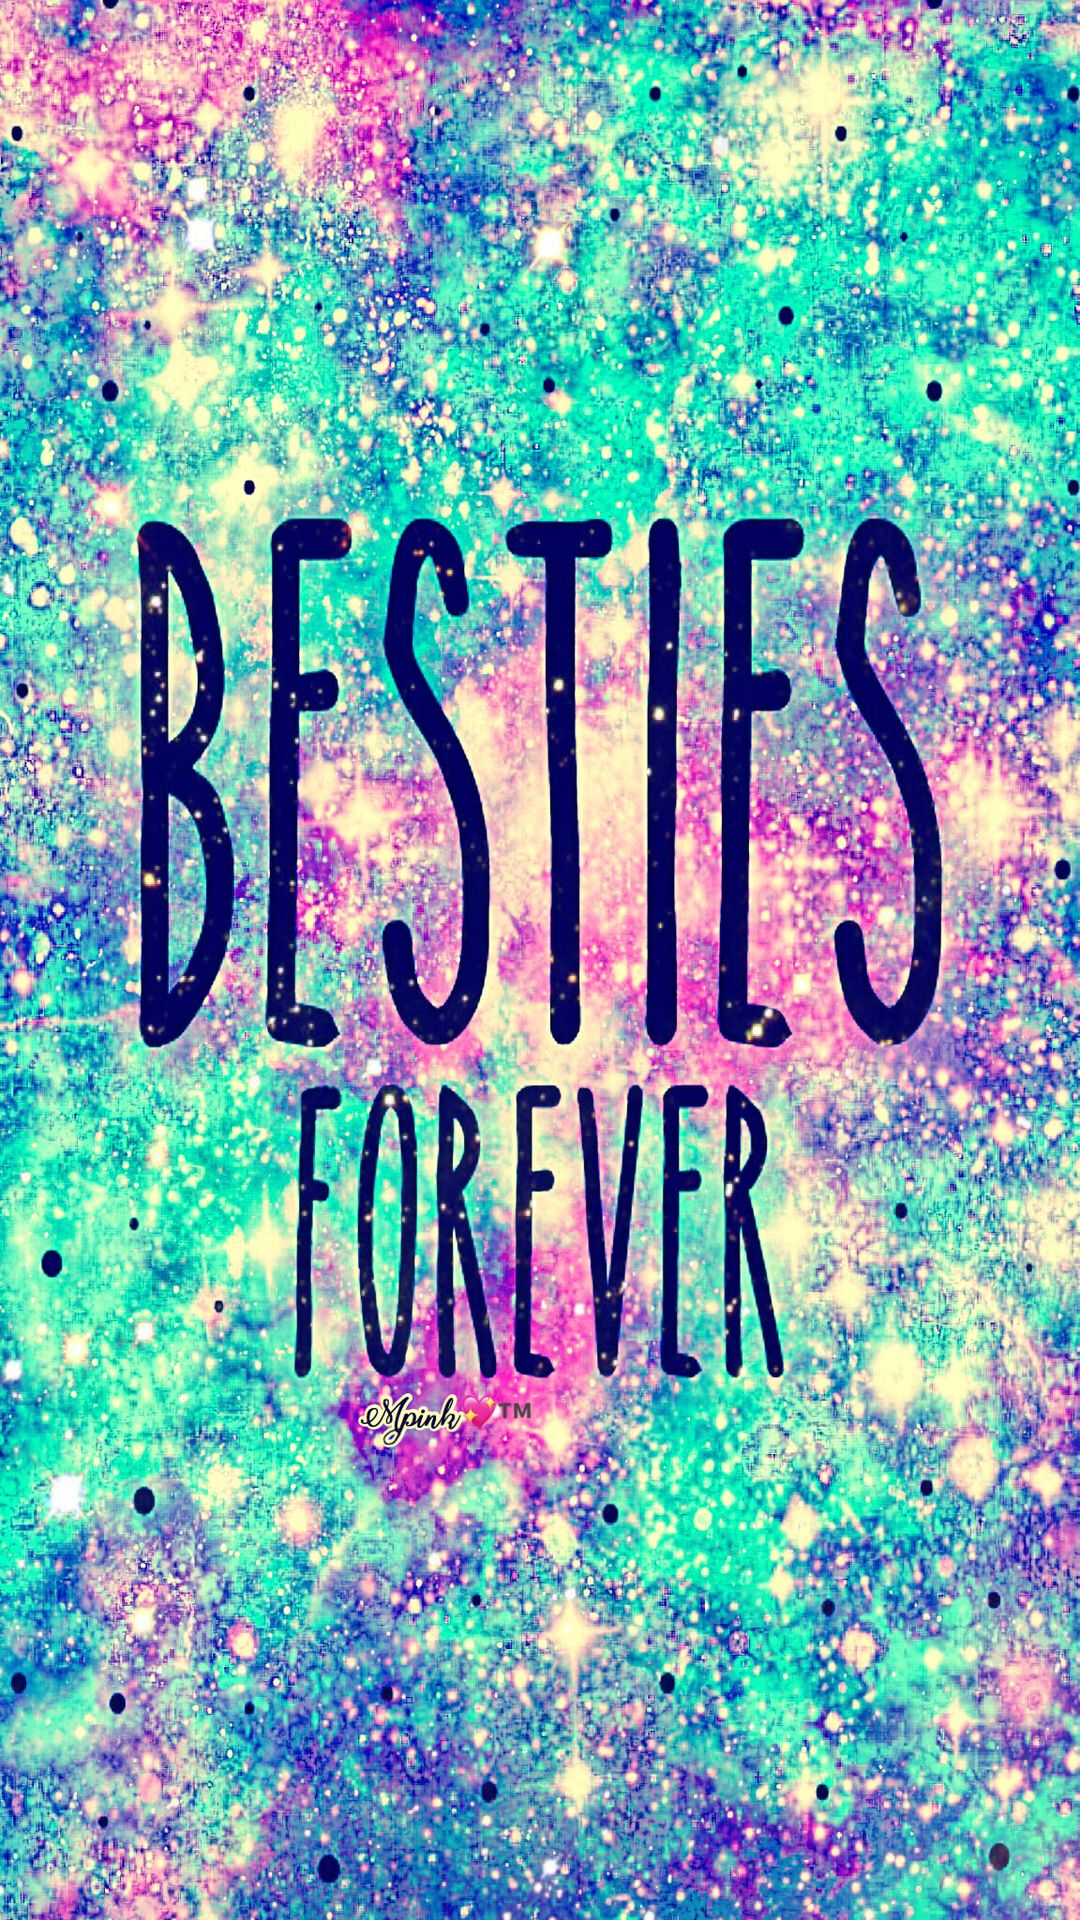 Besties Forever Galaxy Wallpaper #androidwallpaper #iphonewallpaper # wallpaper #galaxy #sparkle #glitter #lockscreen #pretty #pink #cute #bff #girly ...